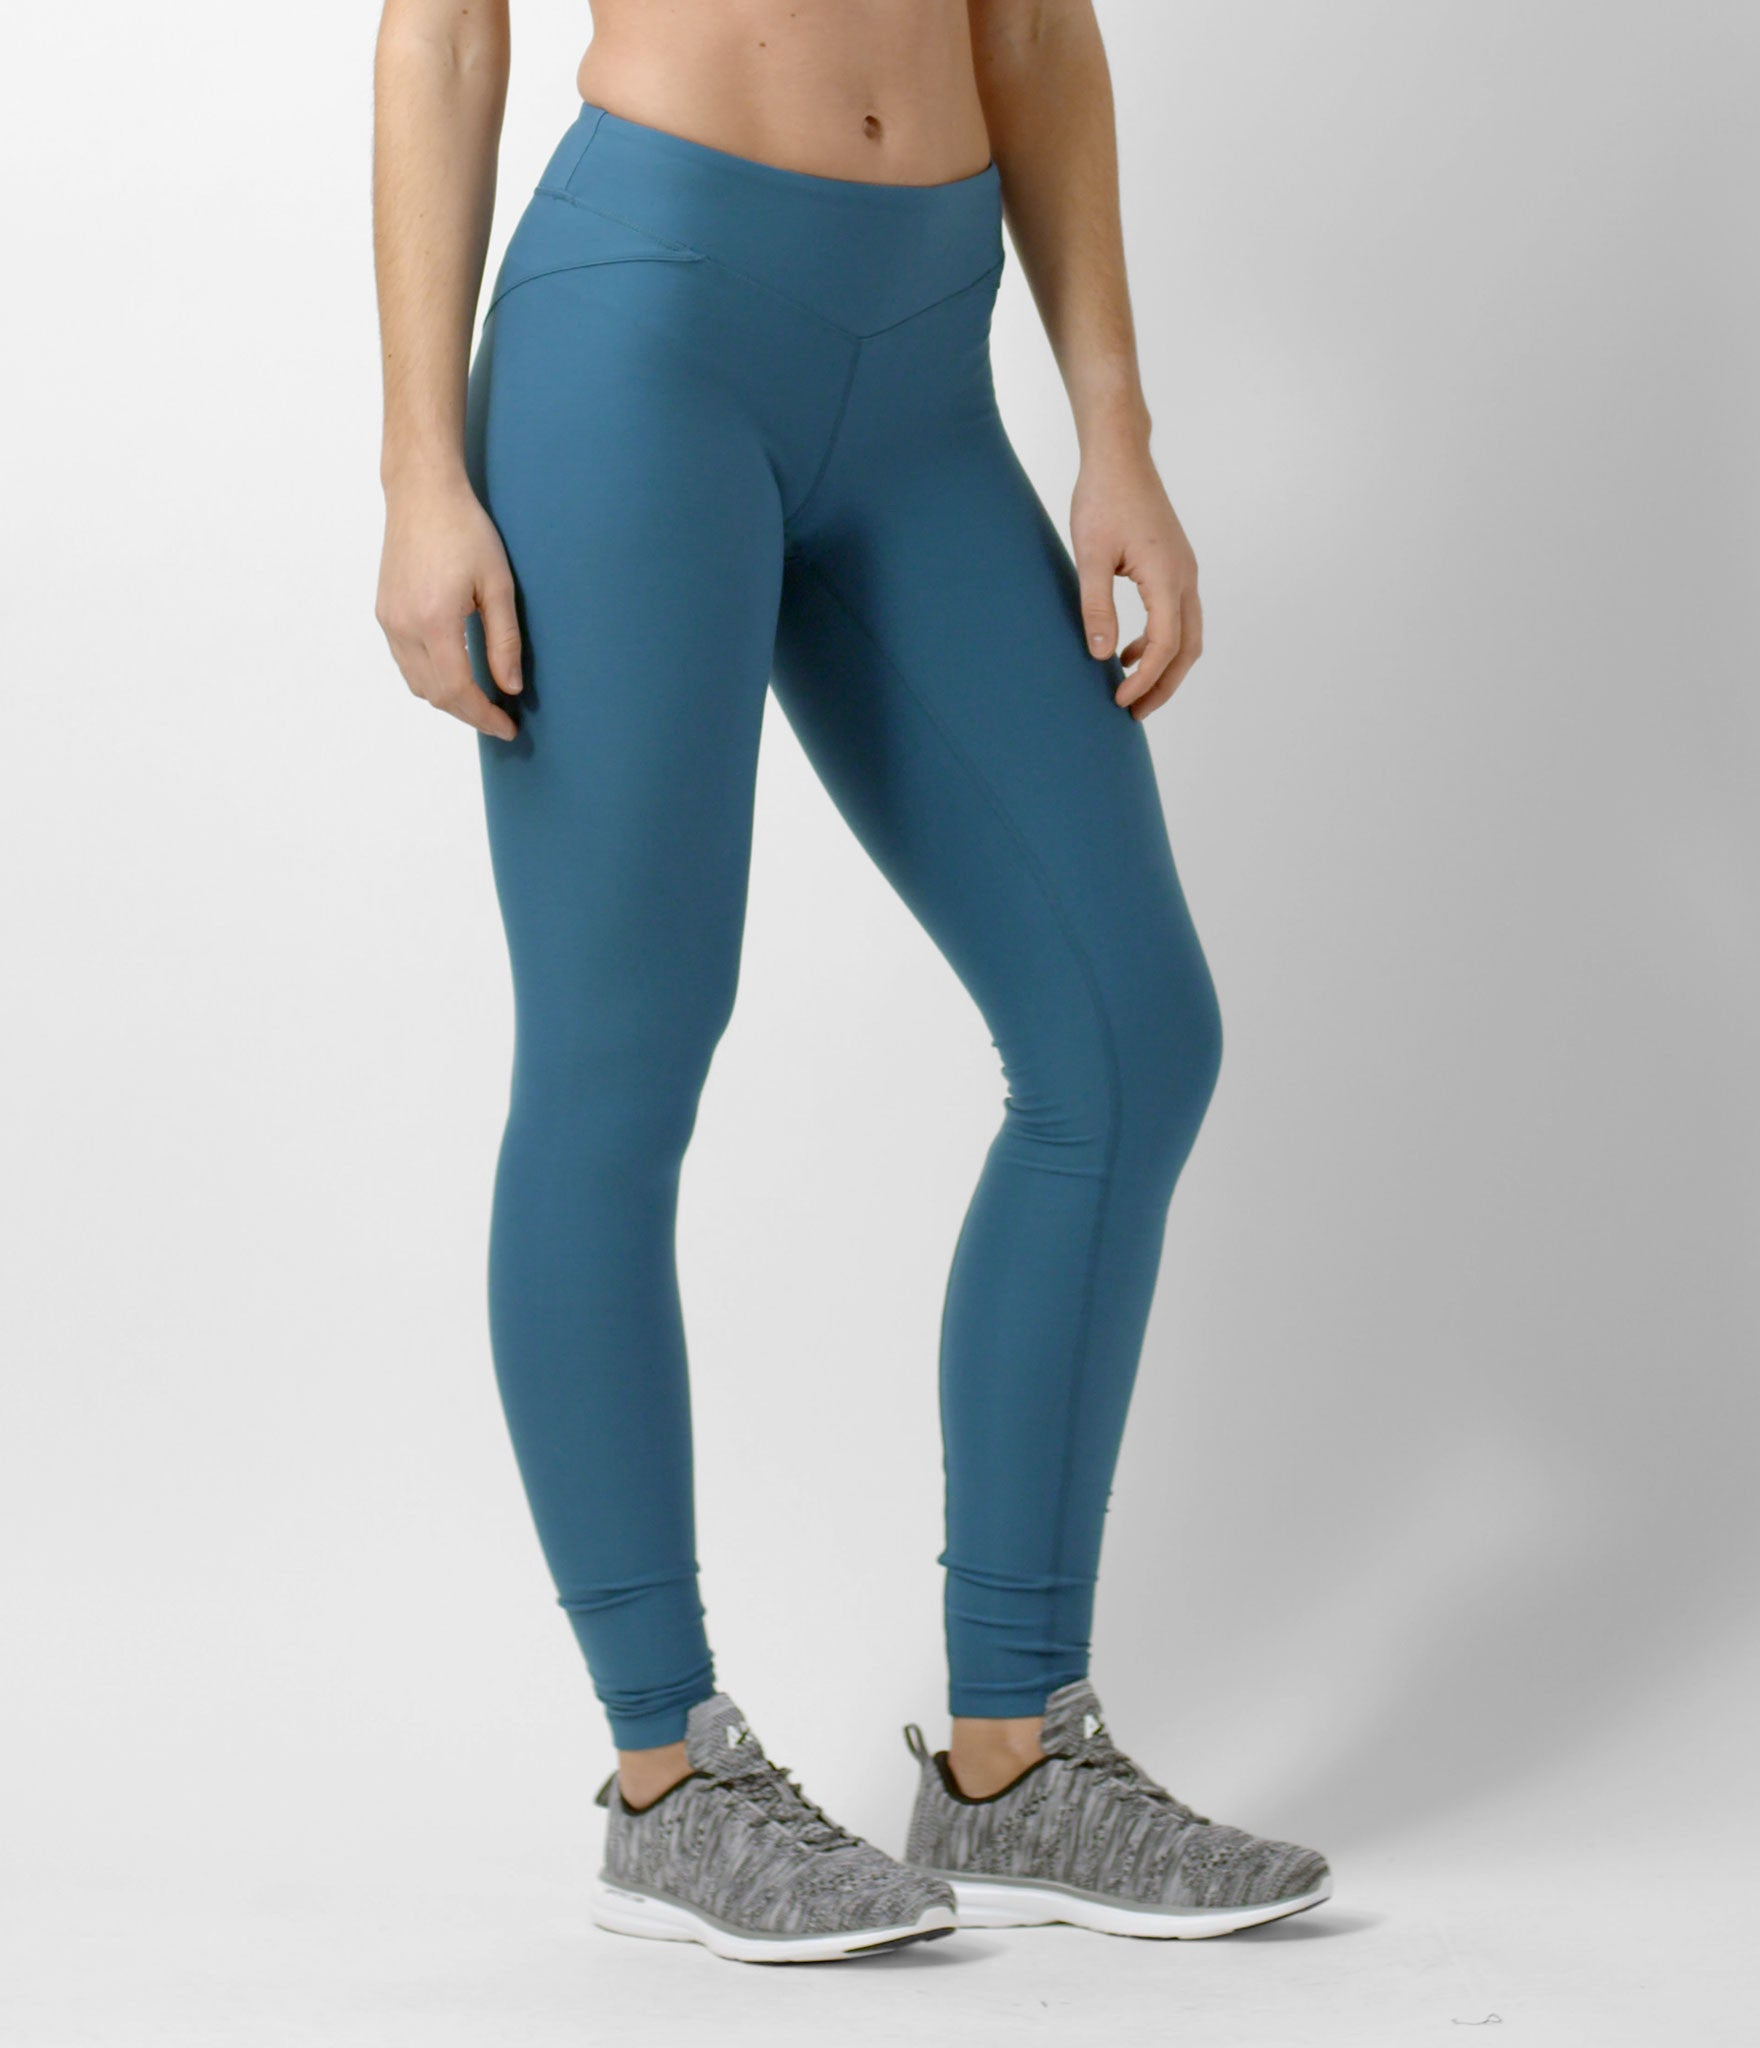 Original Tight, color-moroccan-blue